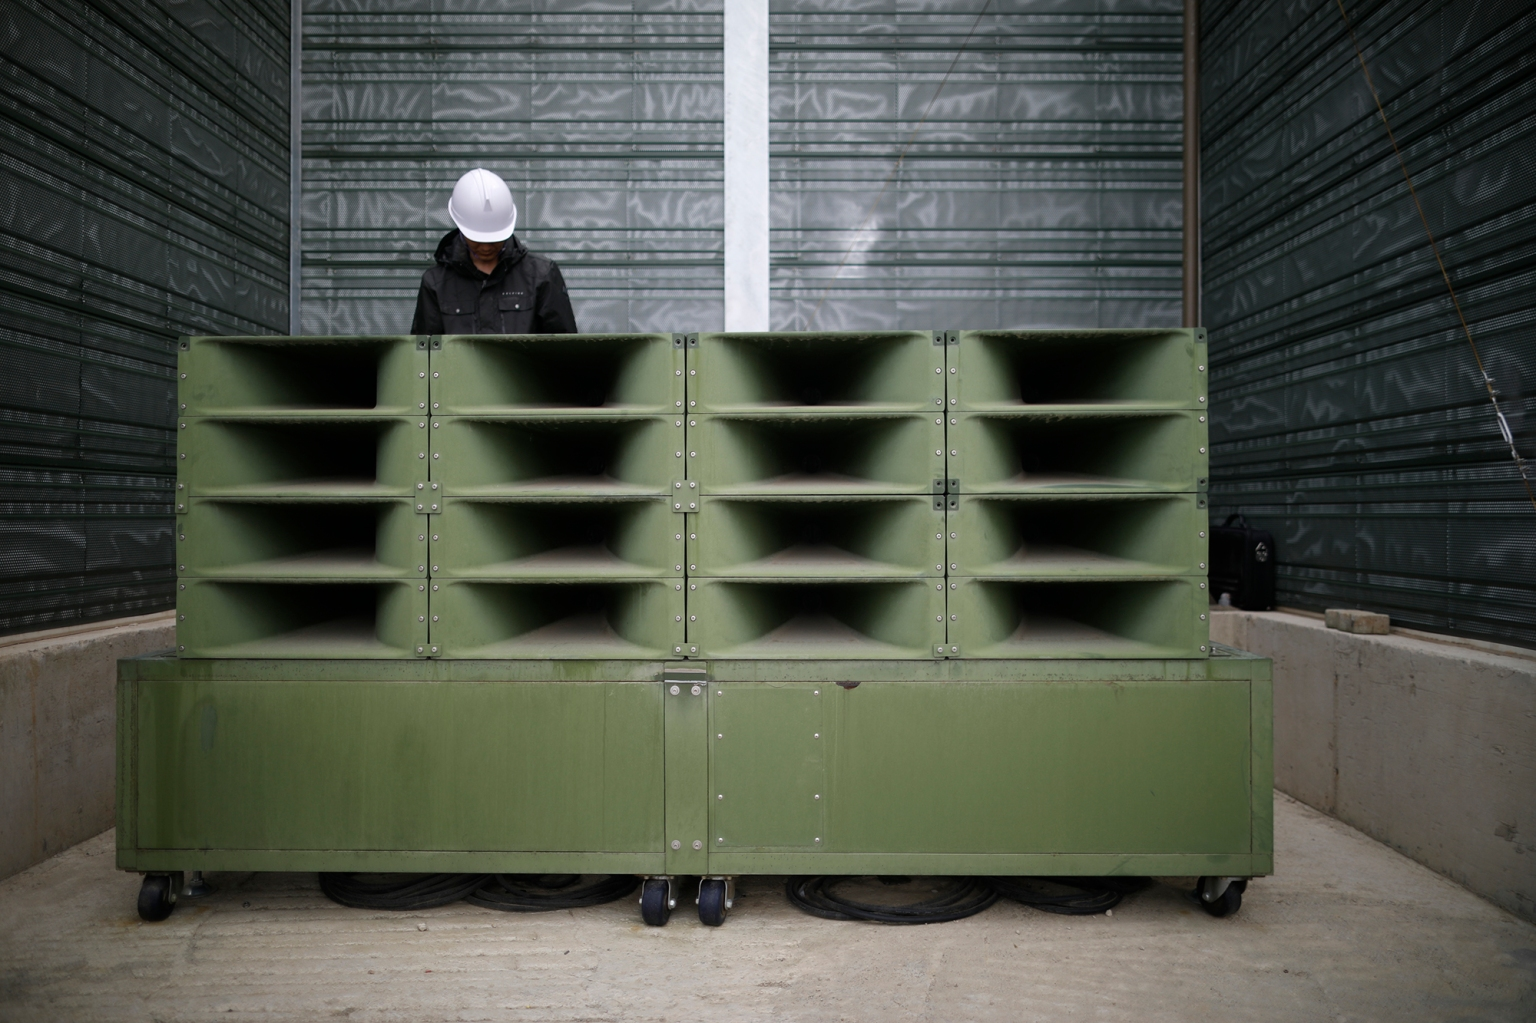 A worker dismantles loudspeakers set up for propaganda broadcasts near the demilitarized zone separating the two Koreas in Paju on May 1. South Korea silenced its battery of giant loudspeakers that blast messages at the North's soldiers in a conciliatory gesture after the historic inter-Korea summit. KIM HONG-JI/AFP/Getty Images